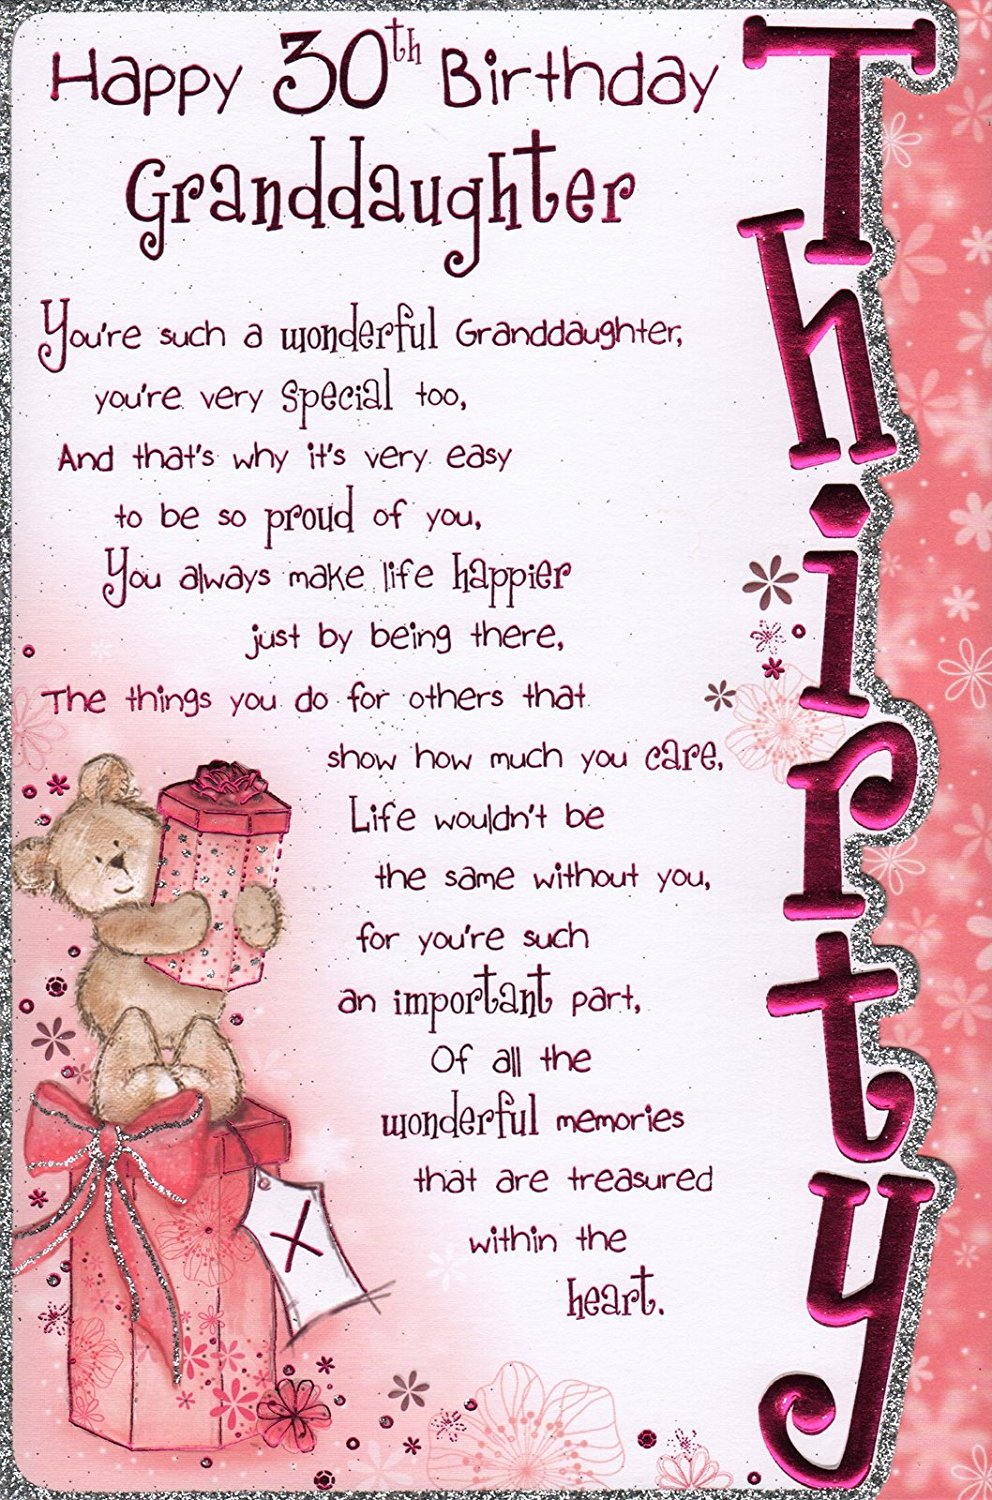 Granddaughter Birday Card Happy